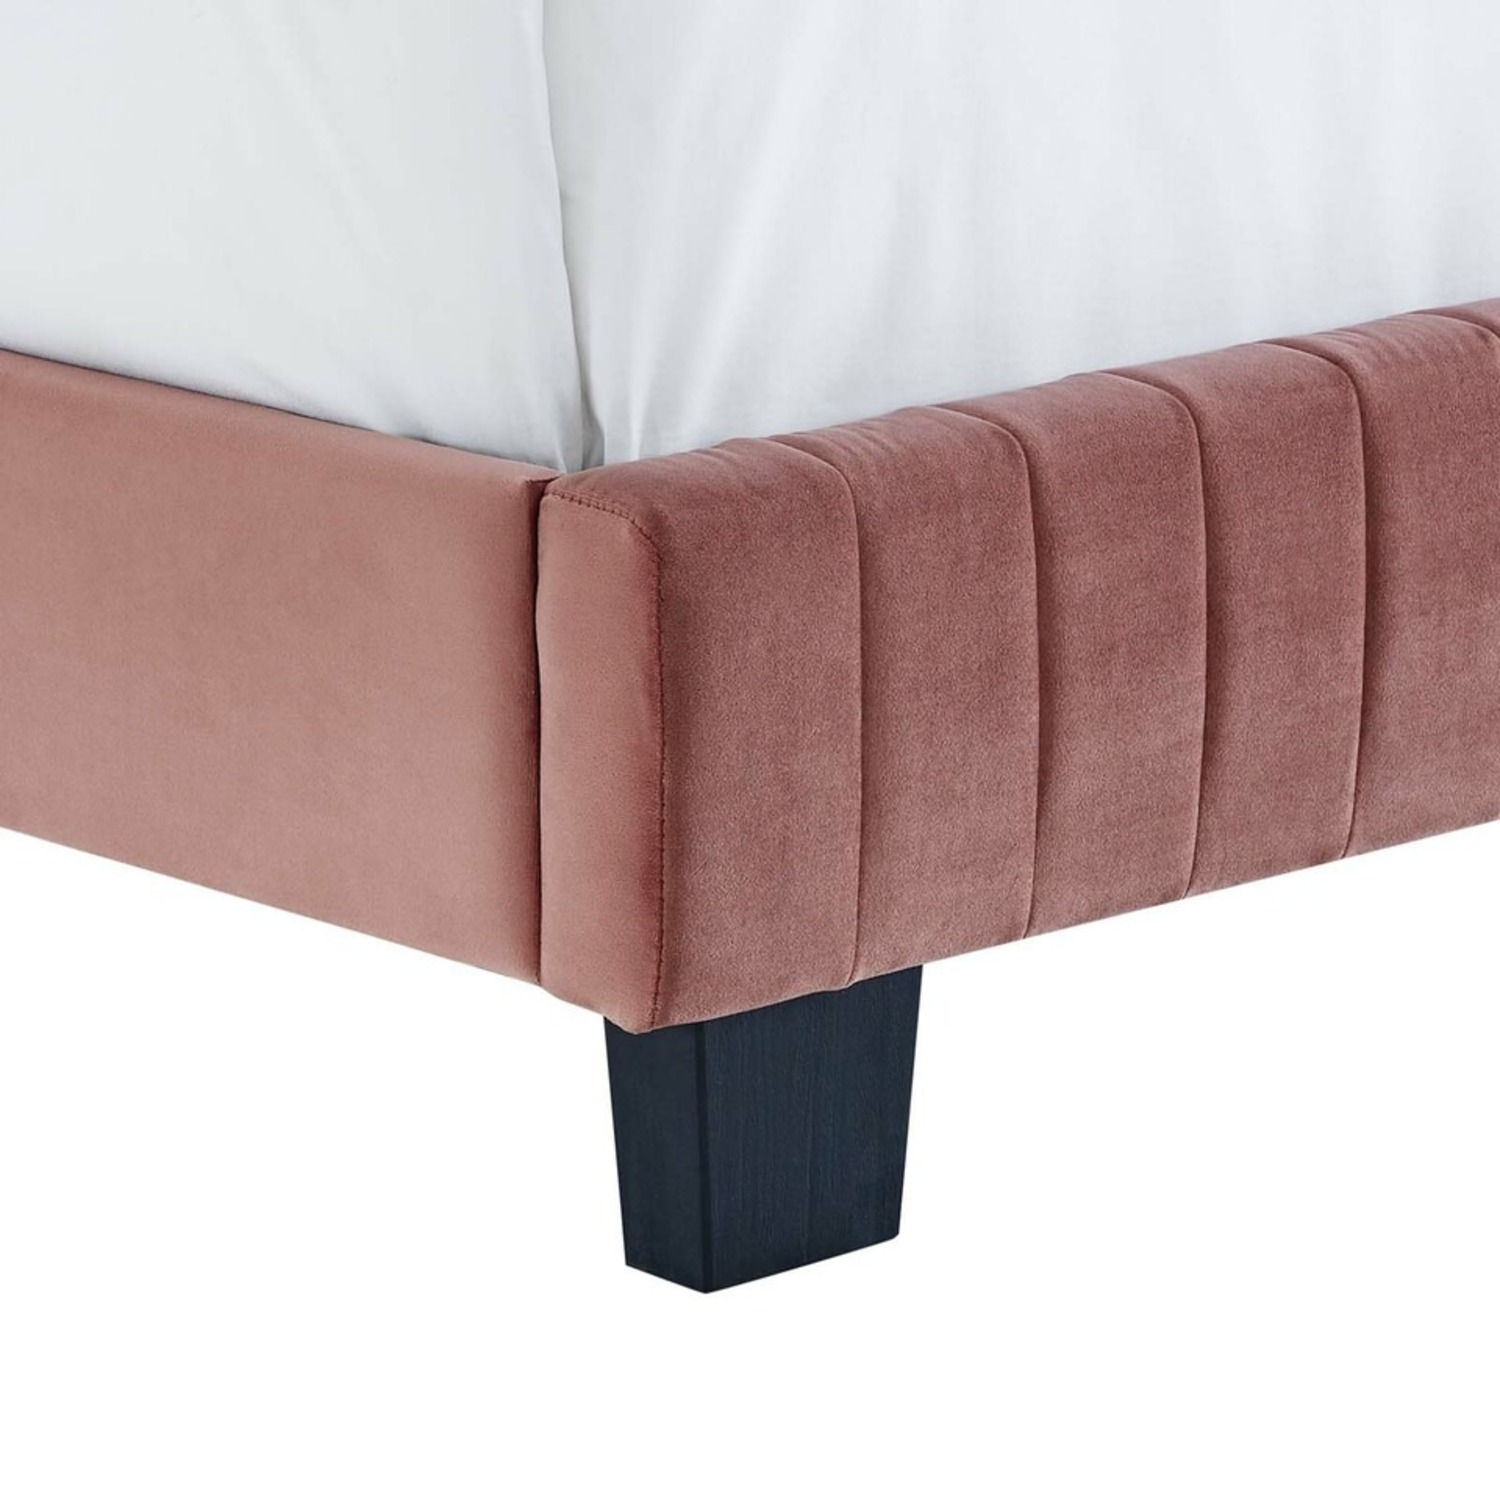 Twin Bed In Dusty Rose Tufted Velvet Fabric Finish - image-4